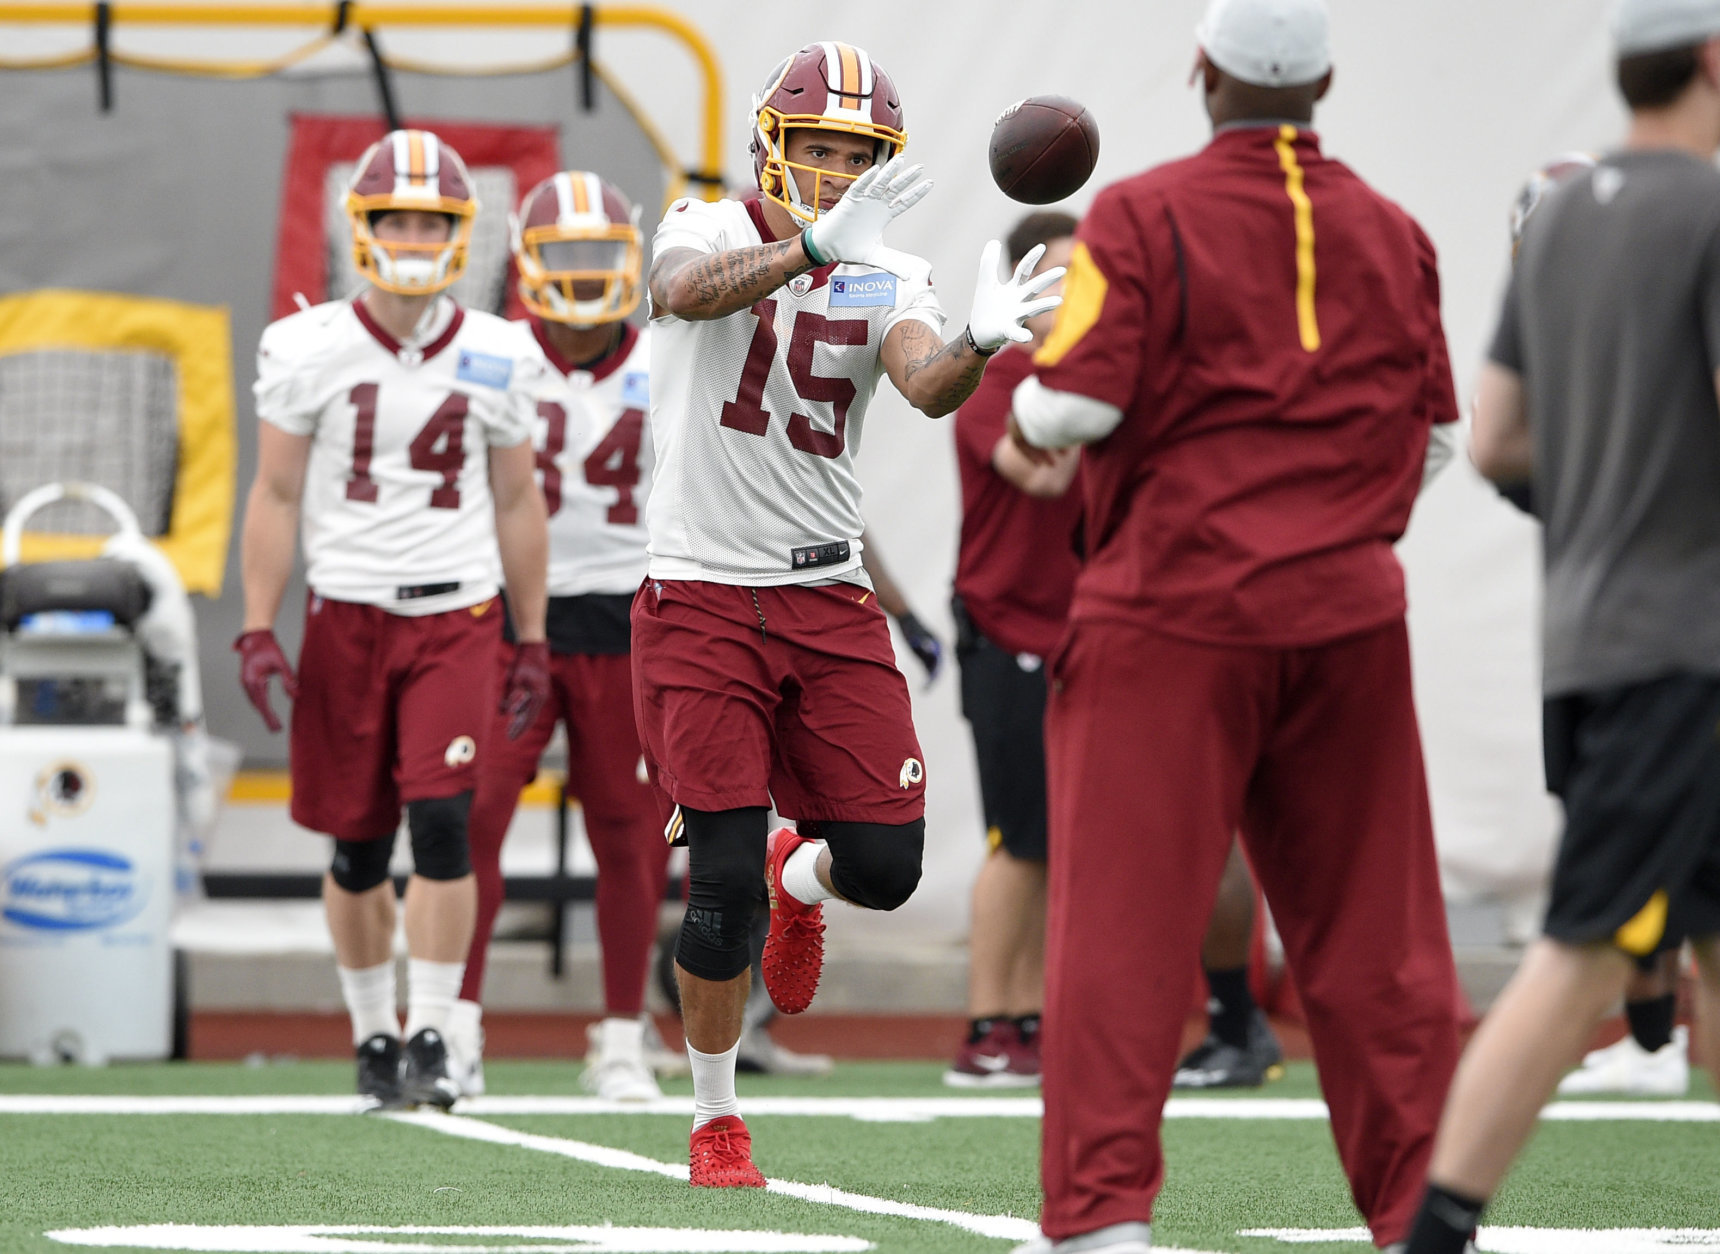 Washington Redskins wide receiver Simmie Cobbs (15) runs a drill during an NFL football team practice, Wednesday, June 13, 2018, in Ashburn, Va. (AP Photo/Nick Wass)